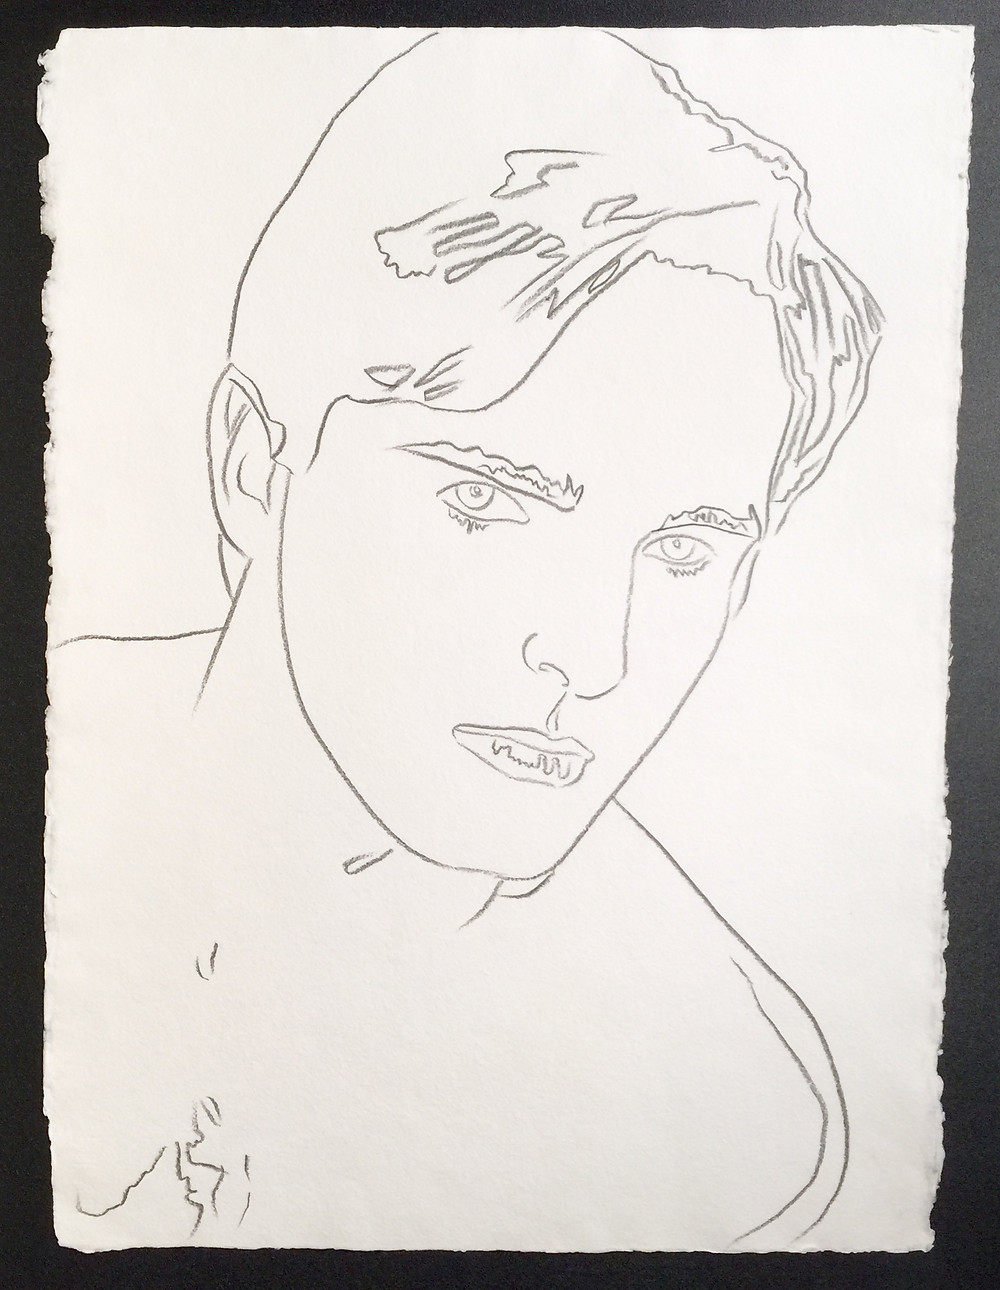 "Miguel Bose; 1983; Graphite on paper; With the 'The Estate of Andy Warhol' and 'Authorized by the Andy Warhol Foundation for the Visual Arts' inkstamps and numbered 115.398 and D1277 on the reverse; Size - Sheet: 31 3/4"" x 23 3/4""; Unframed."